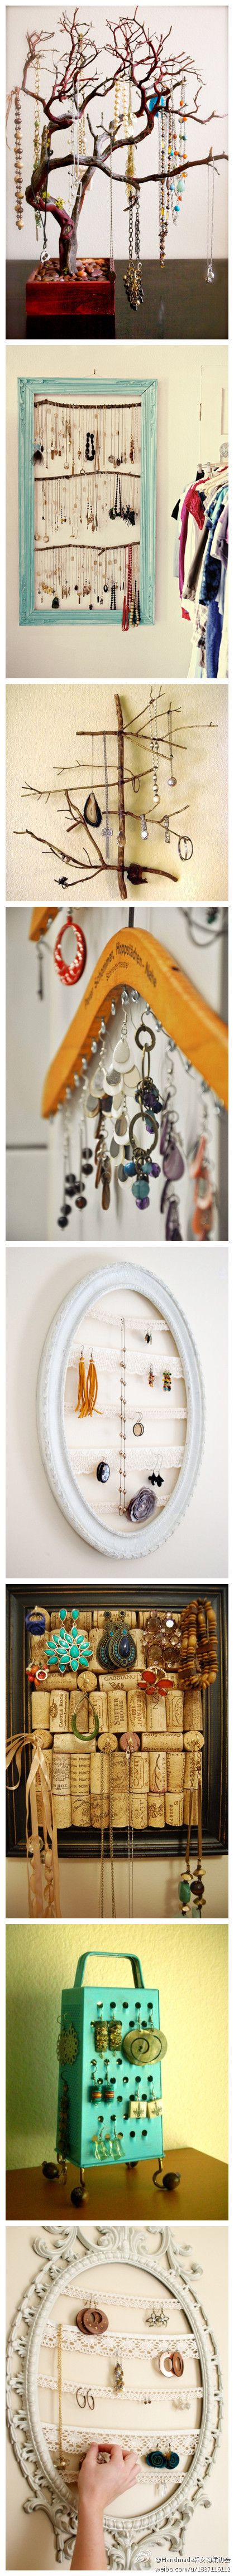 ,Jewelry Hangers, Jewelry Storage, Wine Corks, Diy Jewelry Holder, Jewelry Display, Jewelry Stands, Jewelry Organic, Jewelry Holders, Storage Ideas